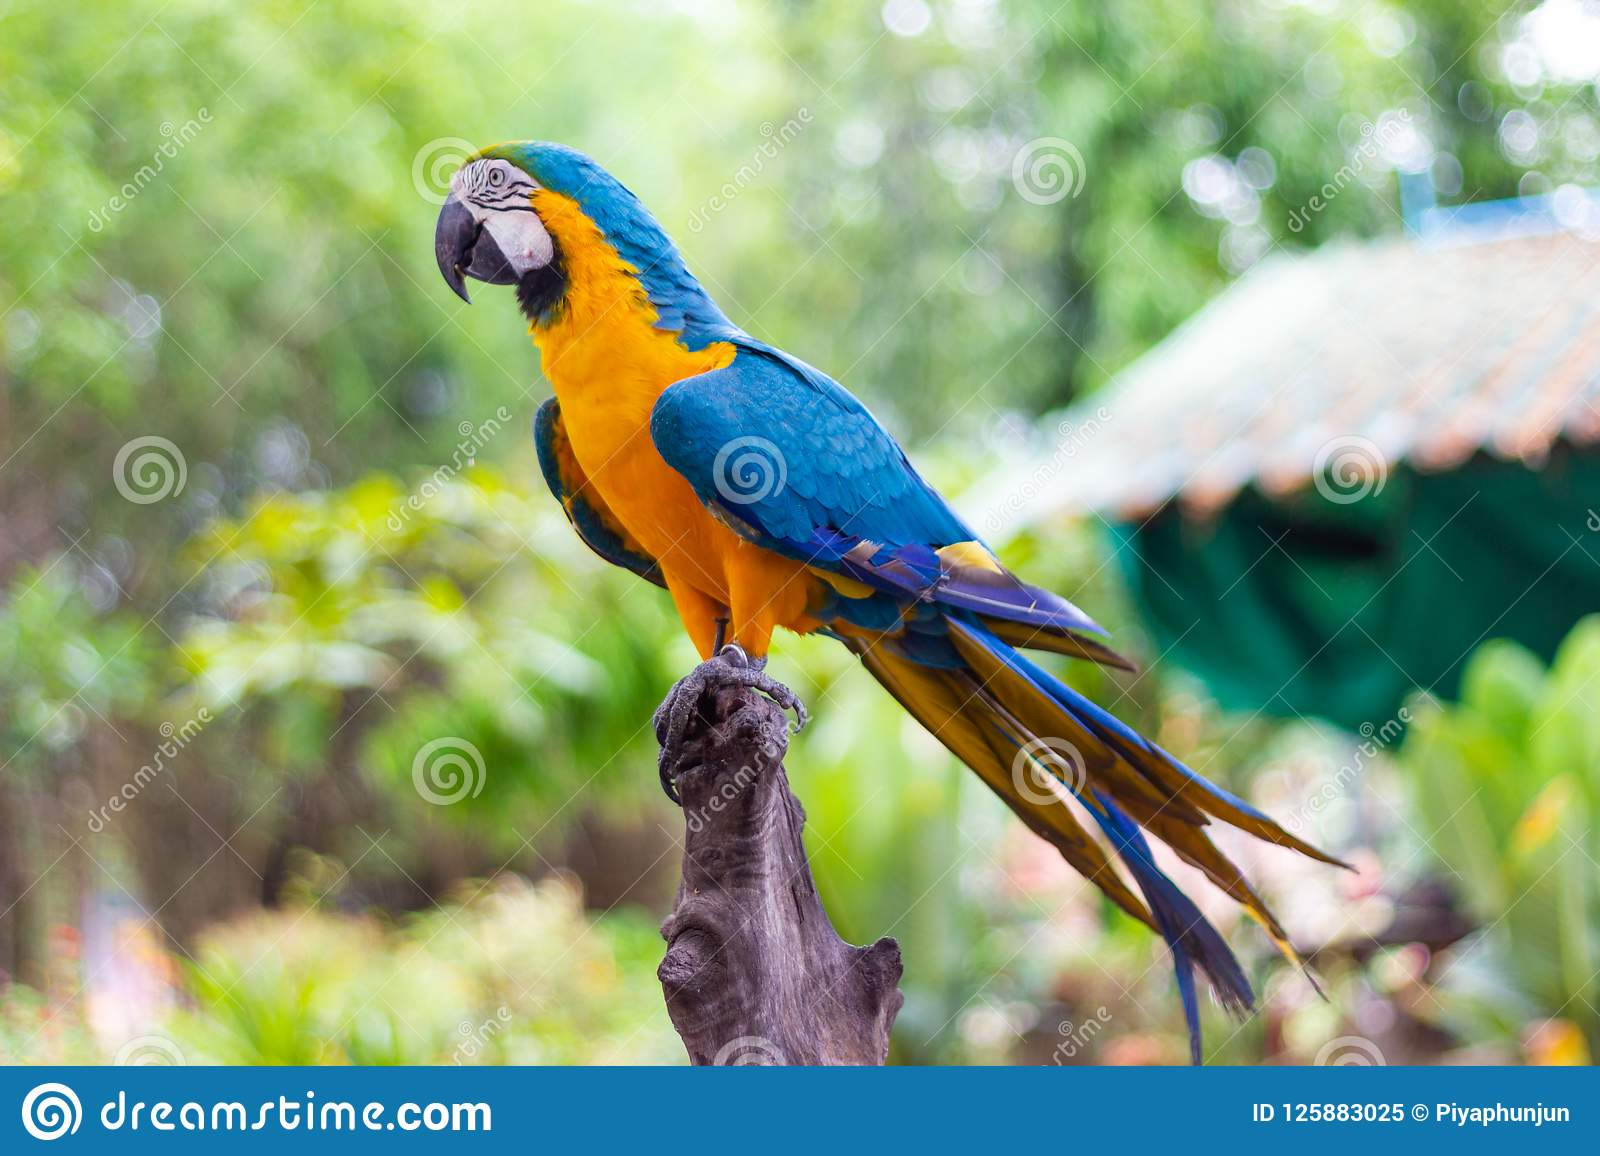 Bird Blue and yellow Macaw on a branch of tree